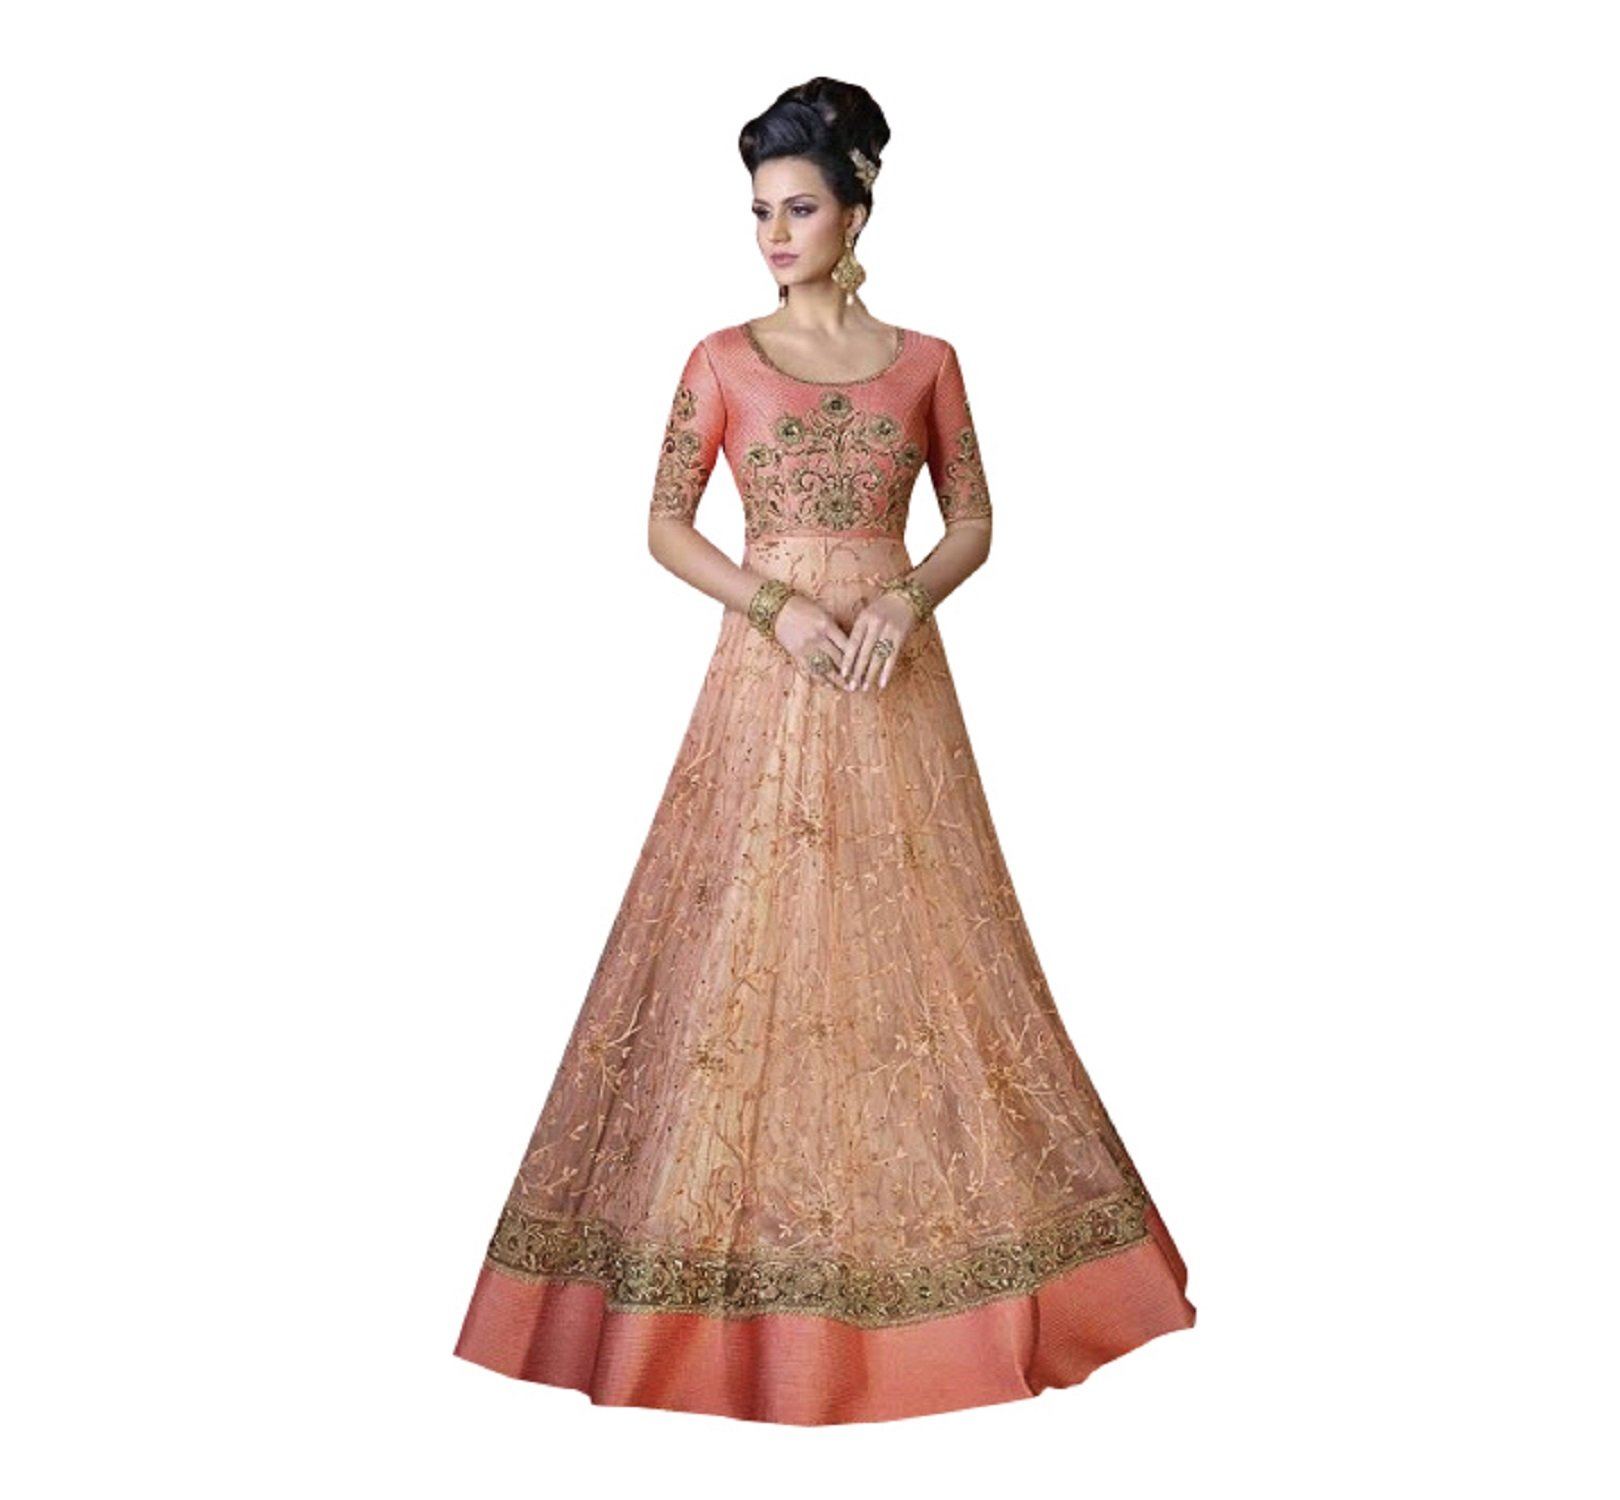 Designer Party Wear Gown Long Dress Bollywood Indian Ethnic Wedding Women Muslim Bridal Embroidery Zari Work 640 (Peach)